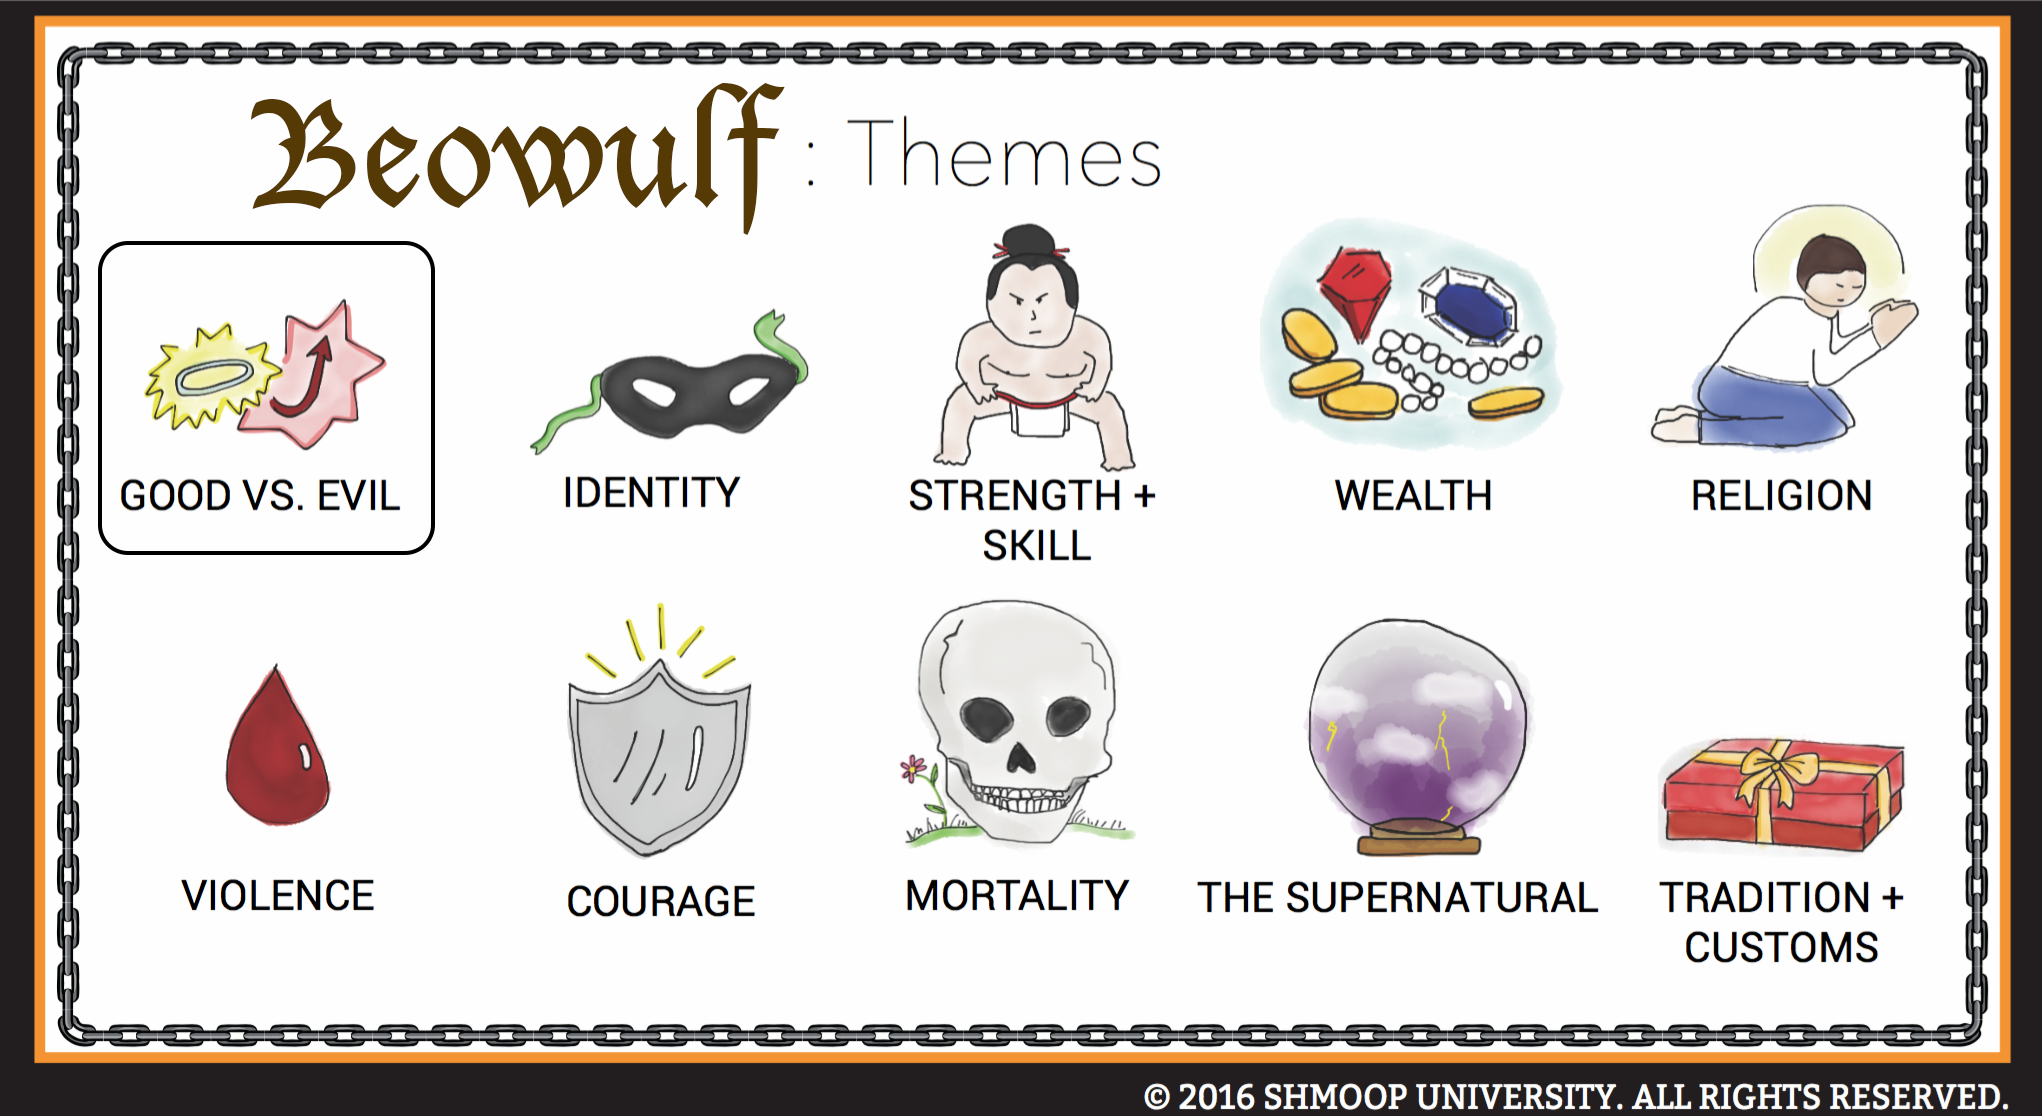 good vs evil in literature Get an answer for 'how is the theme good vs evil presented in textshow is the theme good vs evil presented in texts' and find homework help for other literature questions at enotes.